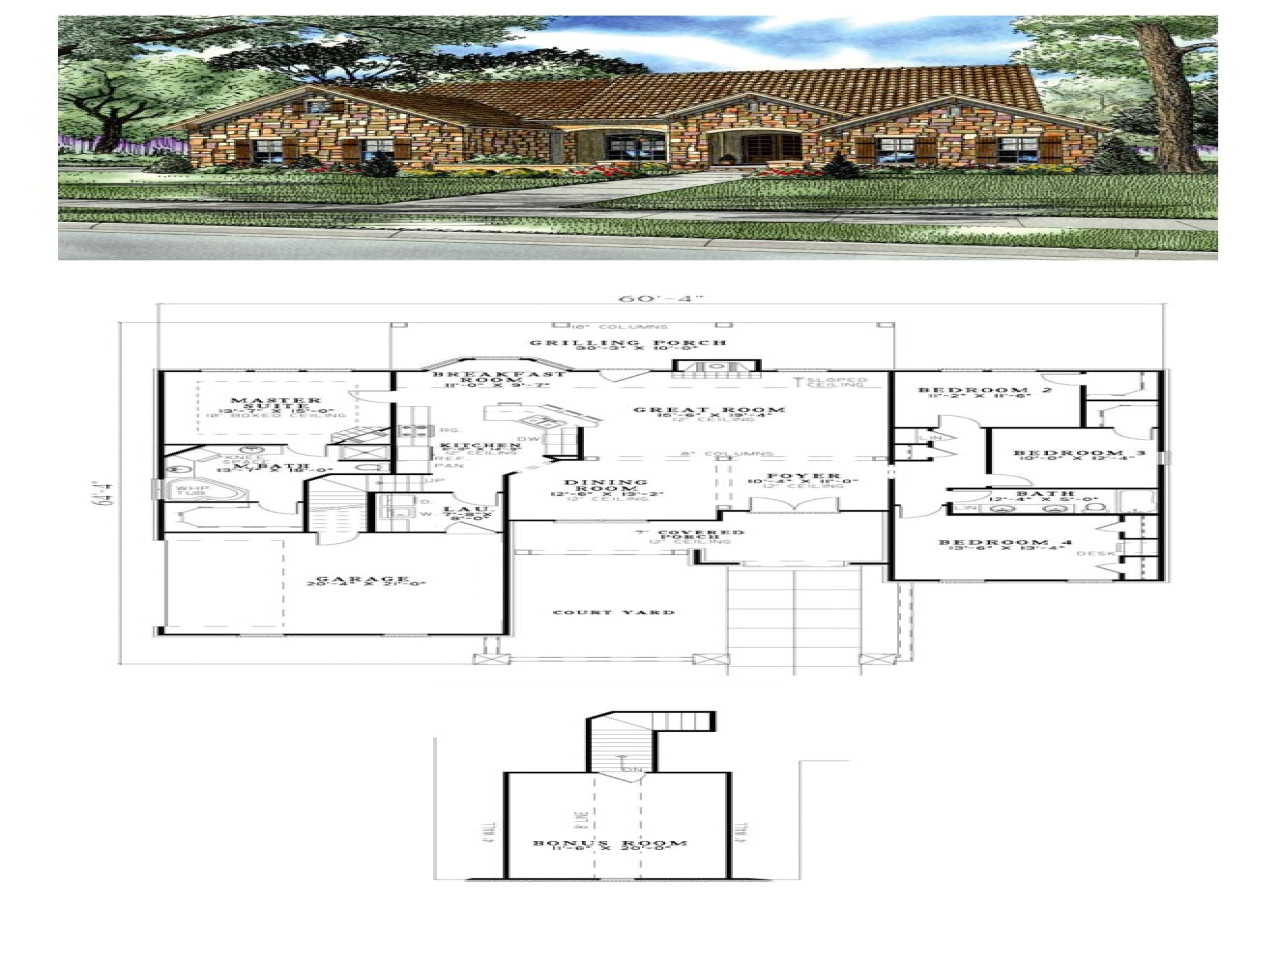 Old World House Plans Tuscan Old World Tuscan Home Plans Tuscan House Plan 82114 total